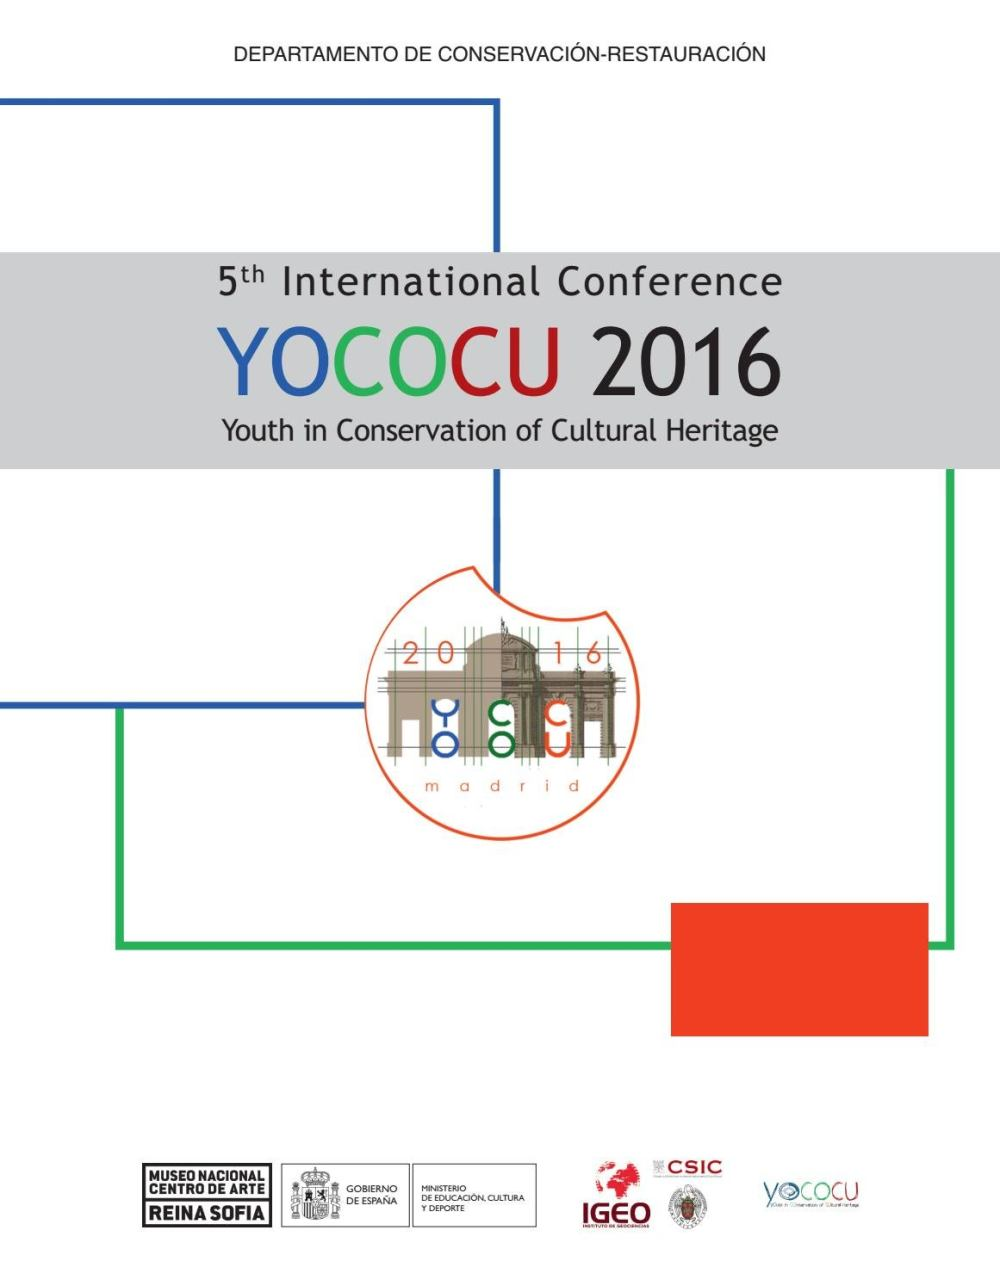 medium resolution of 5th international conference yococu 2016 youth in conservation of cultural heritage